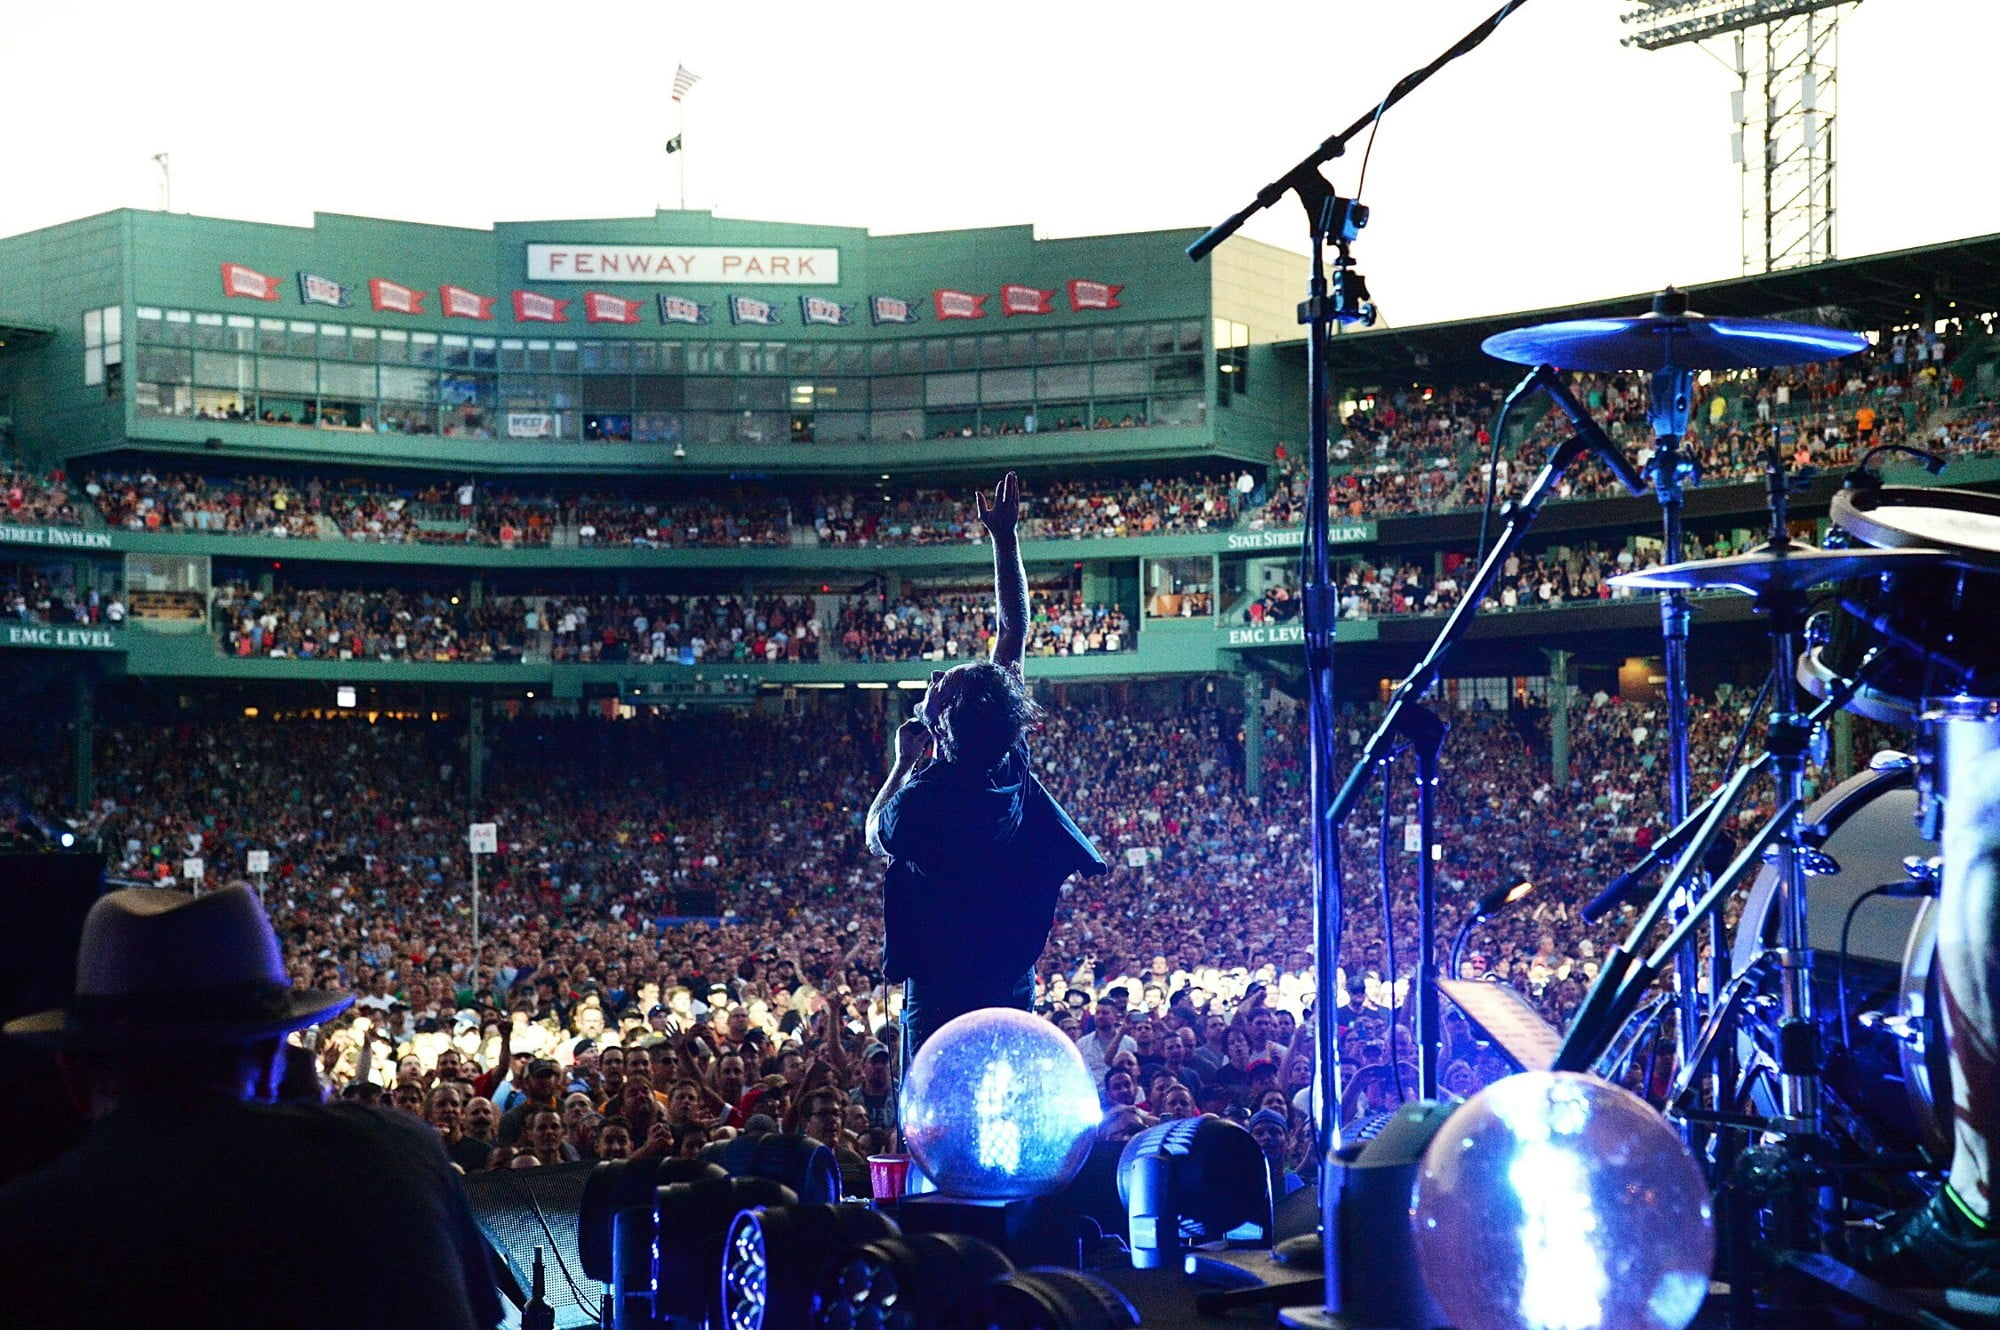 5 Highlights From Pearl Jam's Fenway Doubleheader